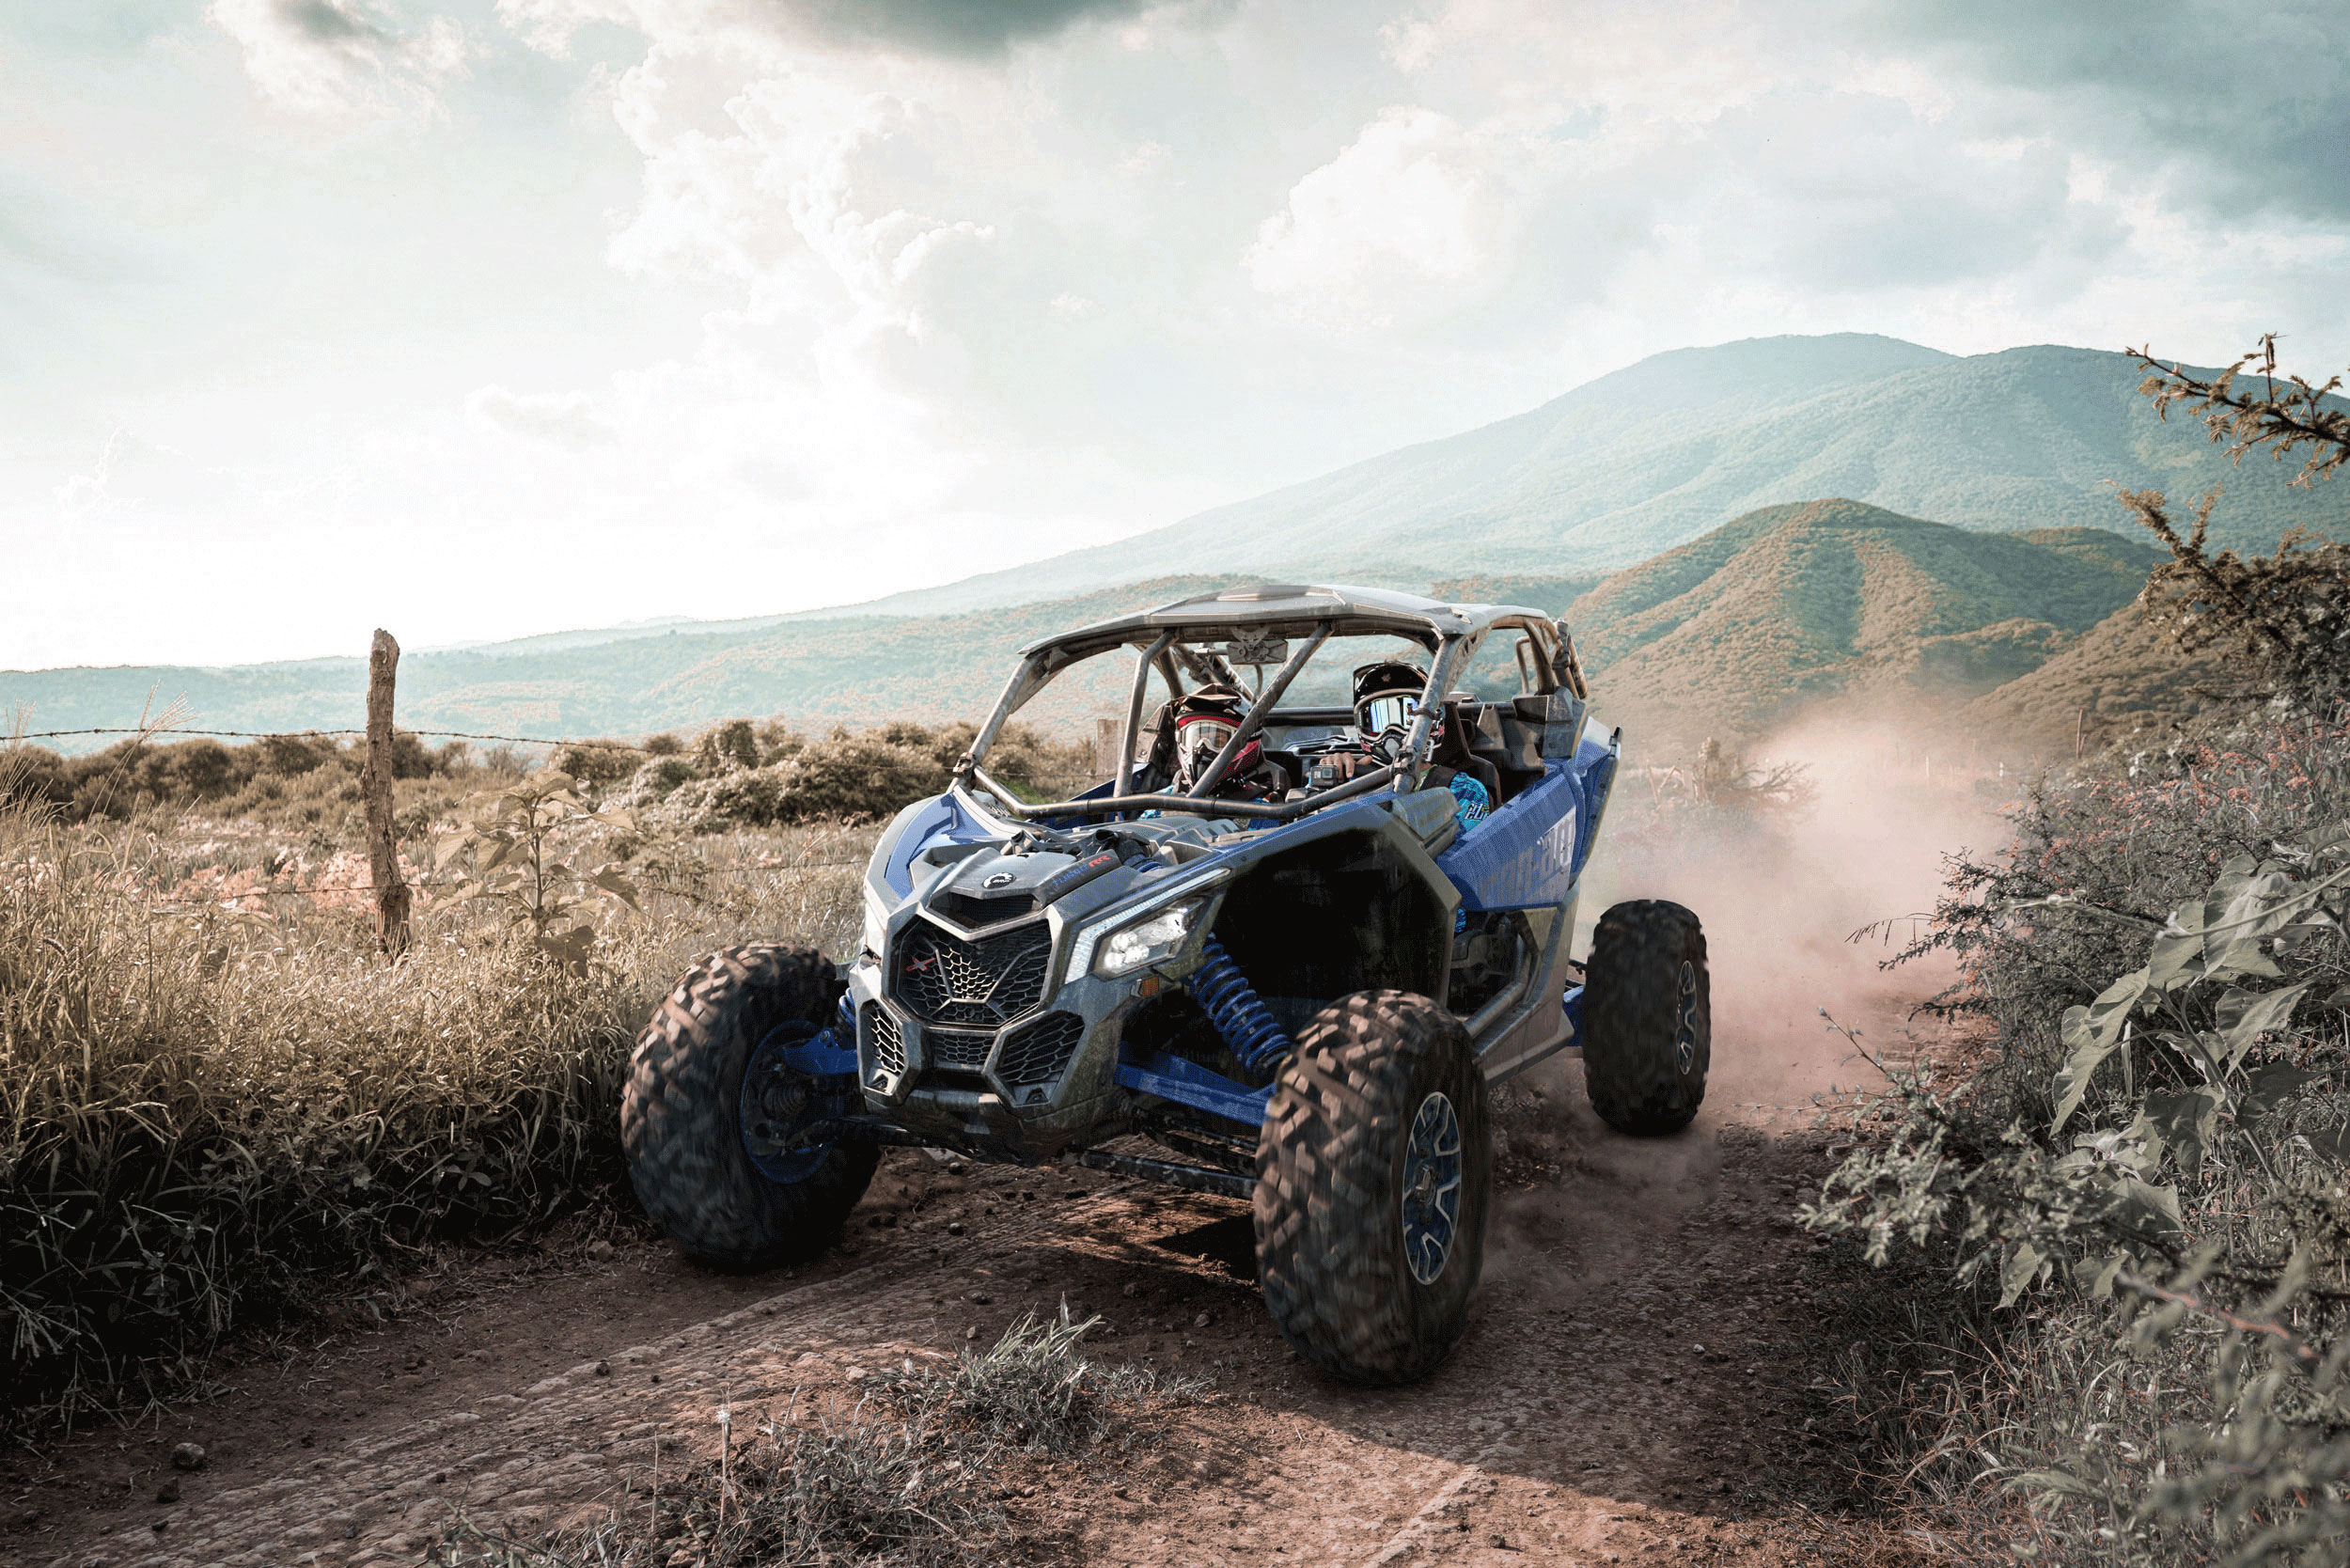 Un côte-à-côte Can-Am Maverick X rs Turbo RR dans un sentier